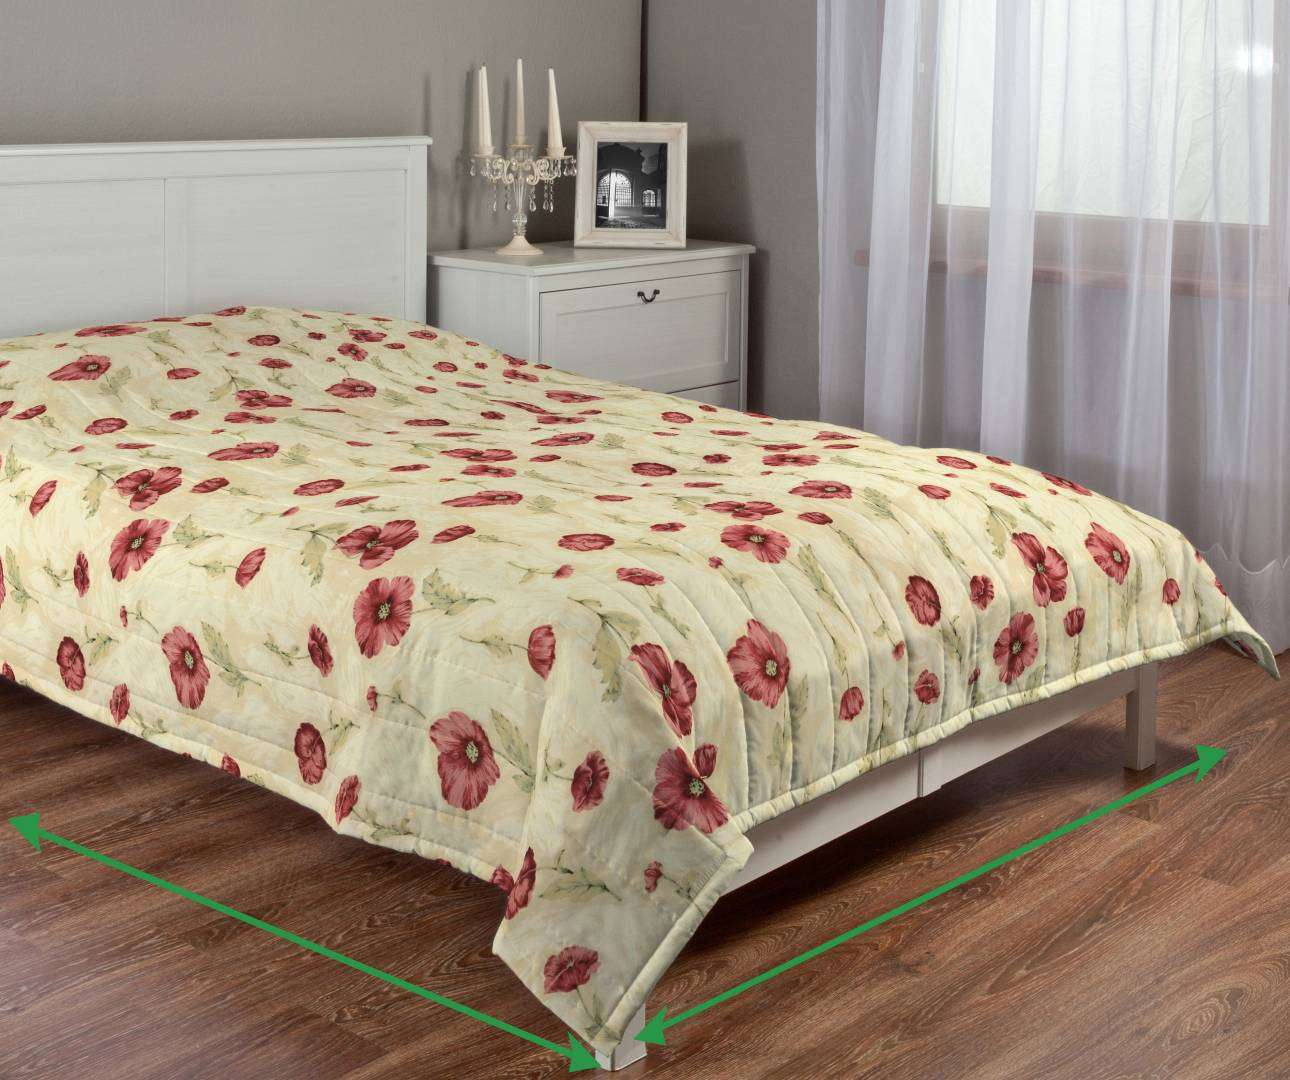 Quilted throw (vertical quilt pattern) in collection Flowers, fabric: 303-01